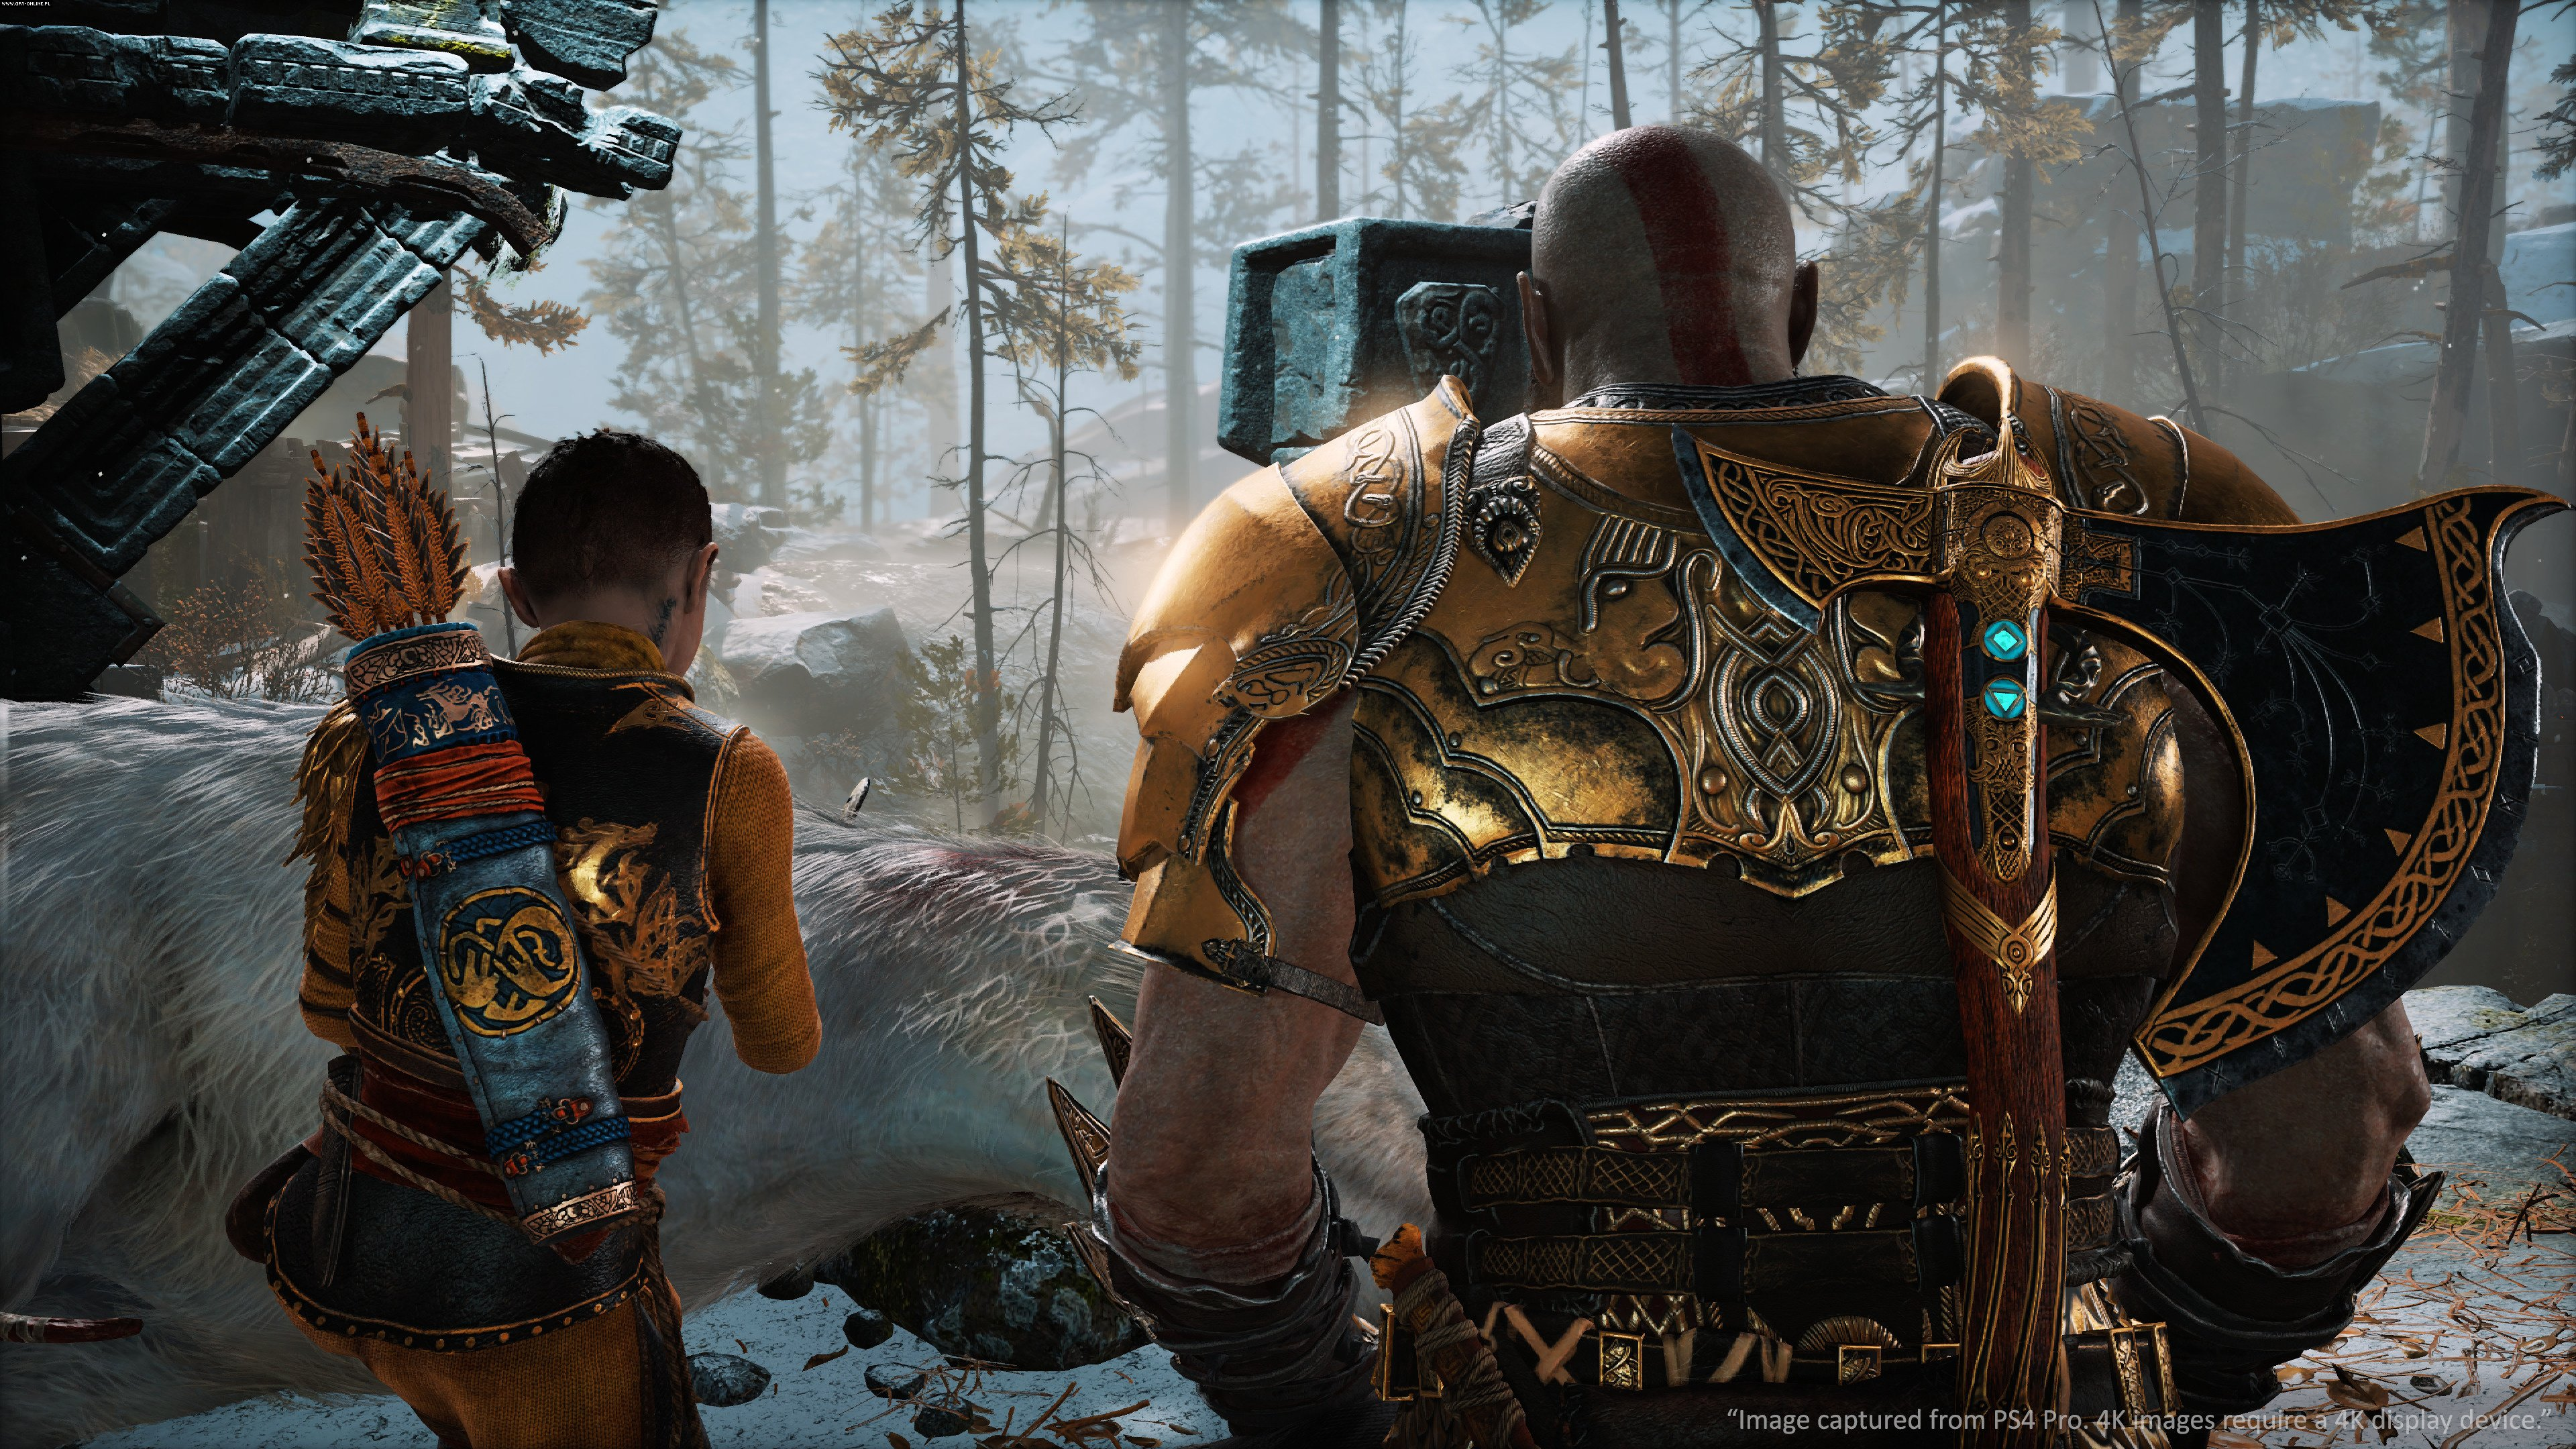 God of War PS4 Gry Screen 3/105, Sony Interactive Entertainment